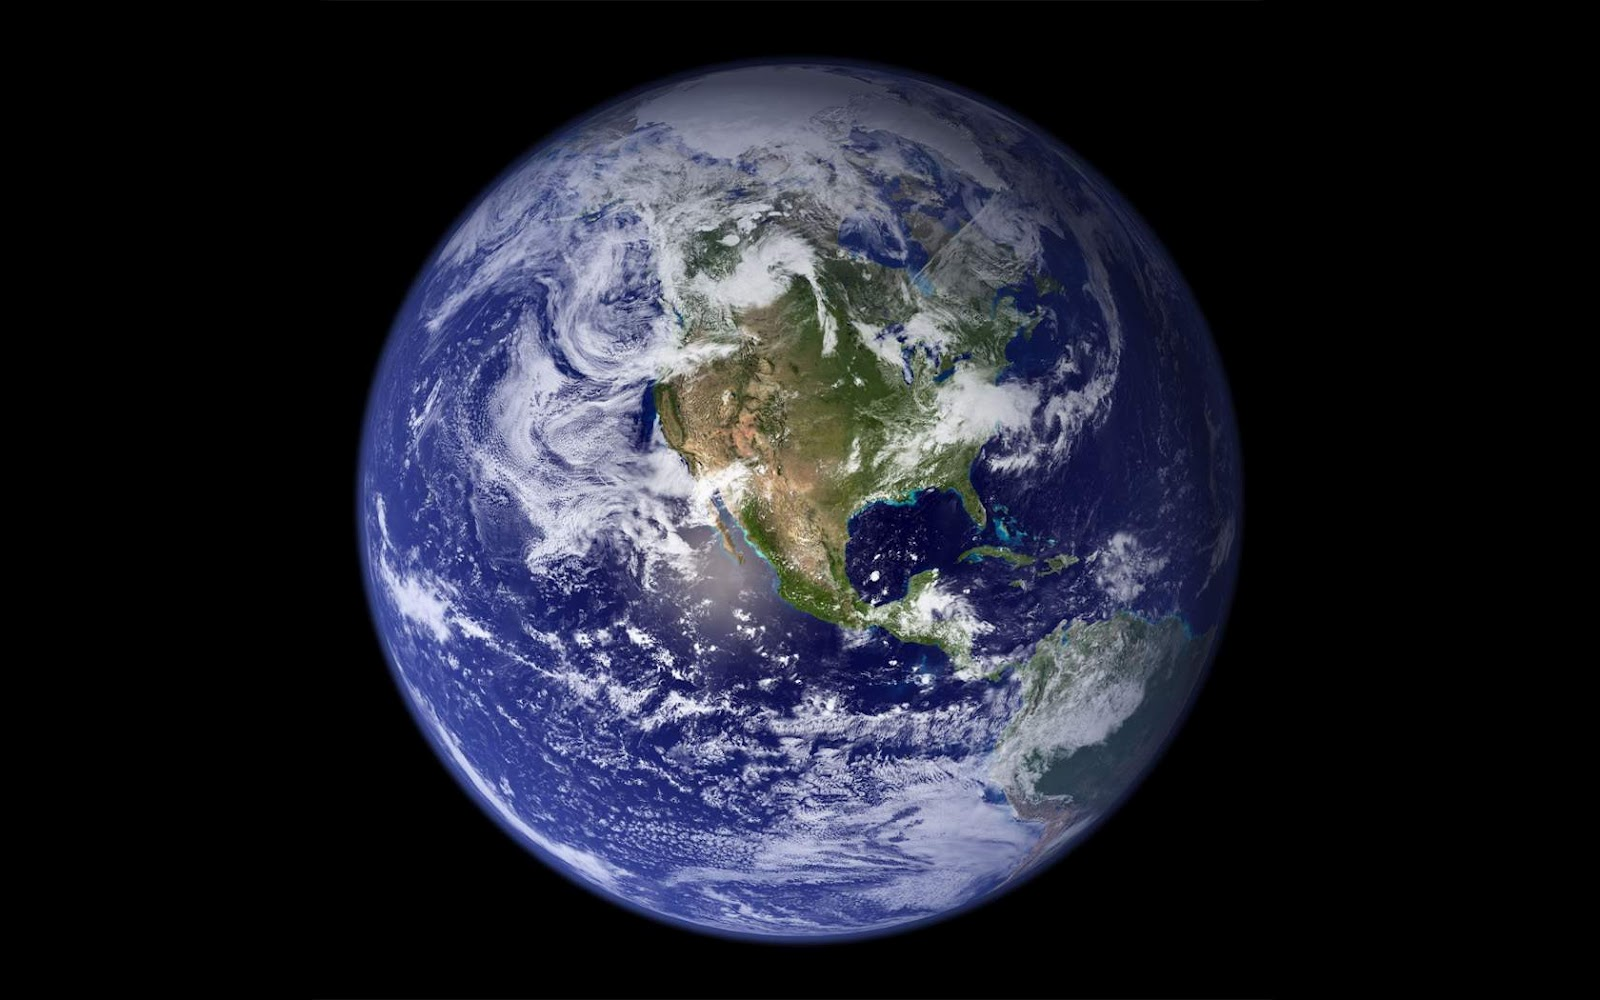 Black and white wallpapers earth from space landscape - Earth from space wallpaper ...